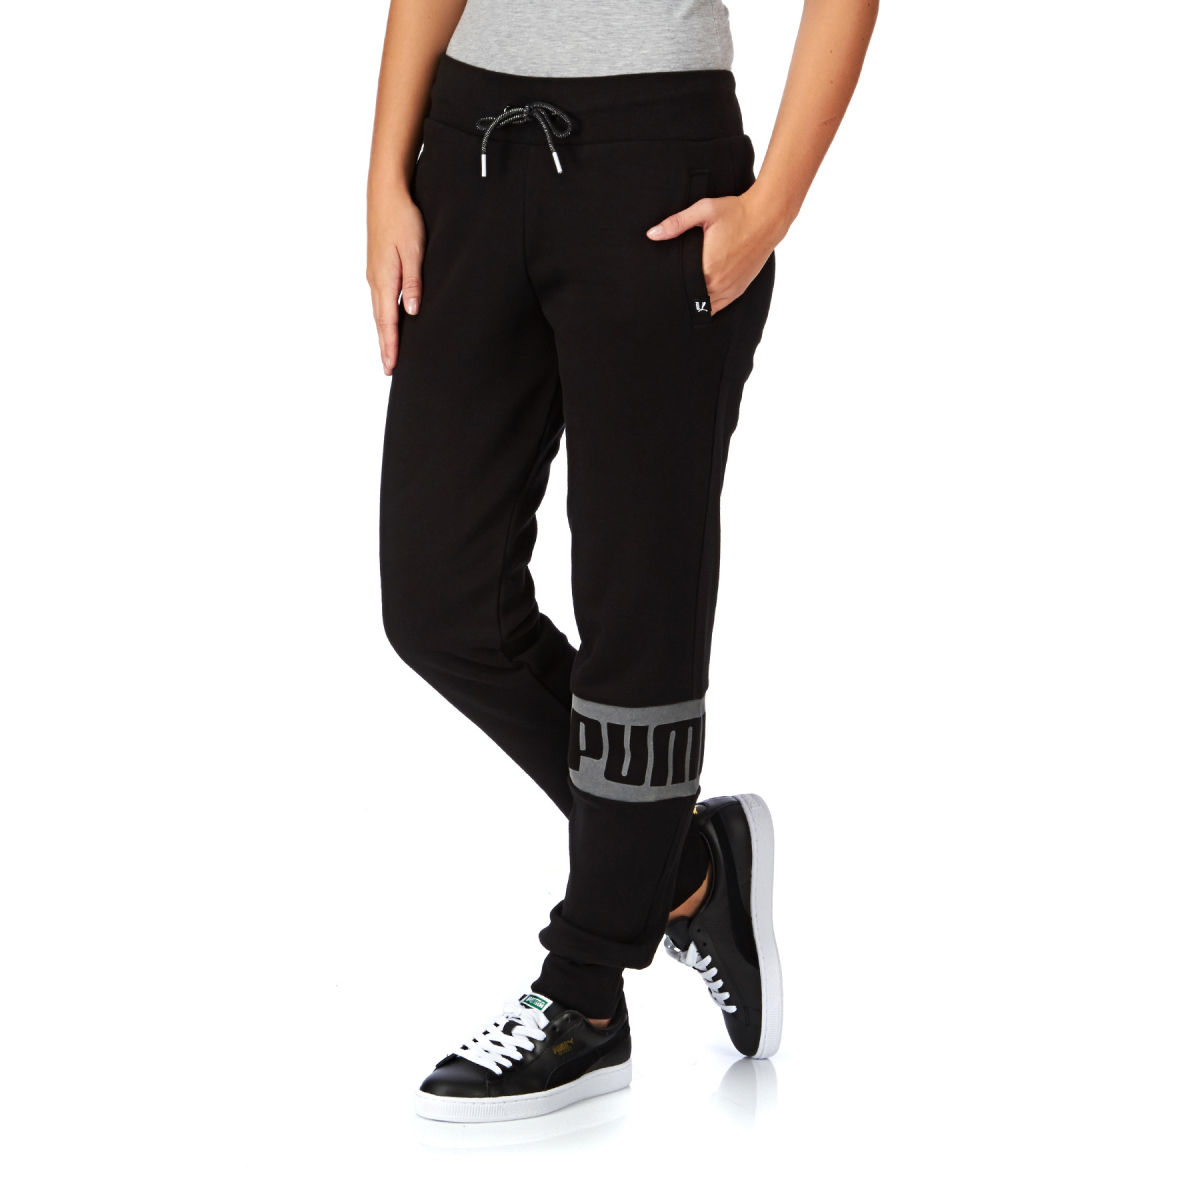 216c5b6af781 puma tracksuit bottoms womens - Come take a walk!